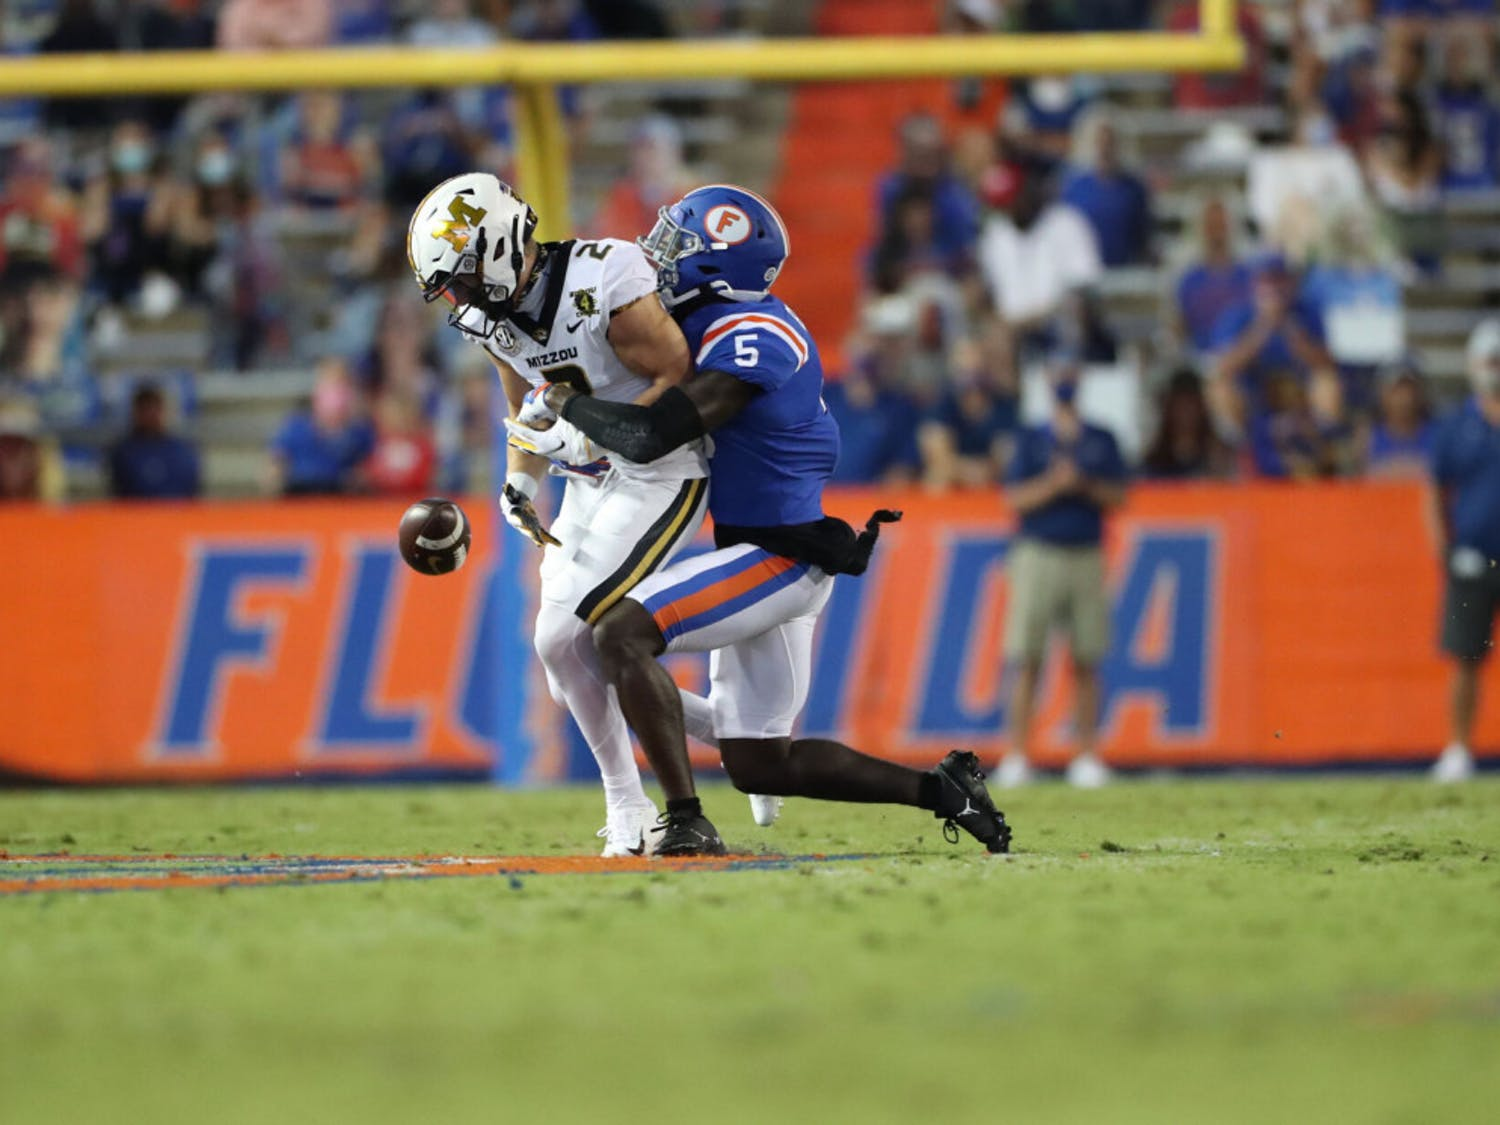 Florida cornerback Kaiir Elam is a presumed star, but the rest of the cornerback group must battle inexperience during the 2021 season. (Photo courtesy of Courtney Culbreath/UAA)